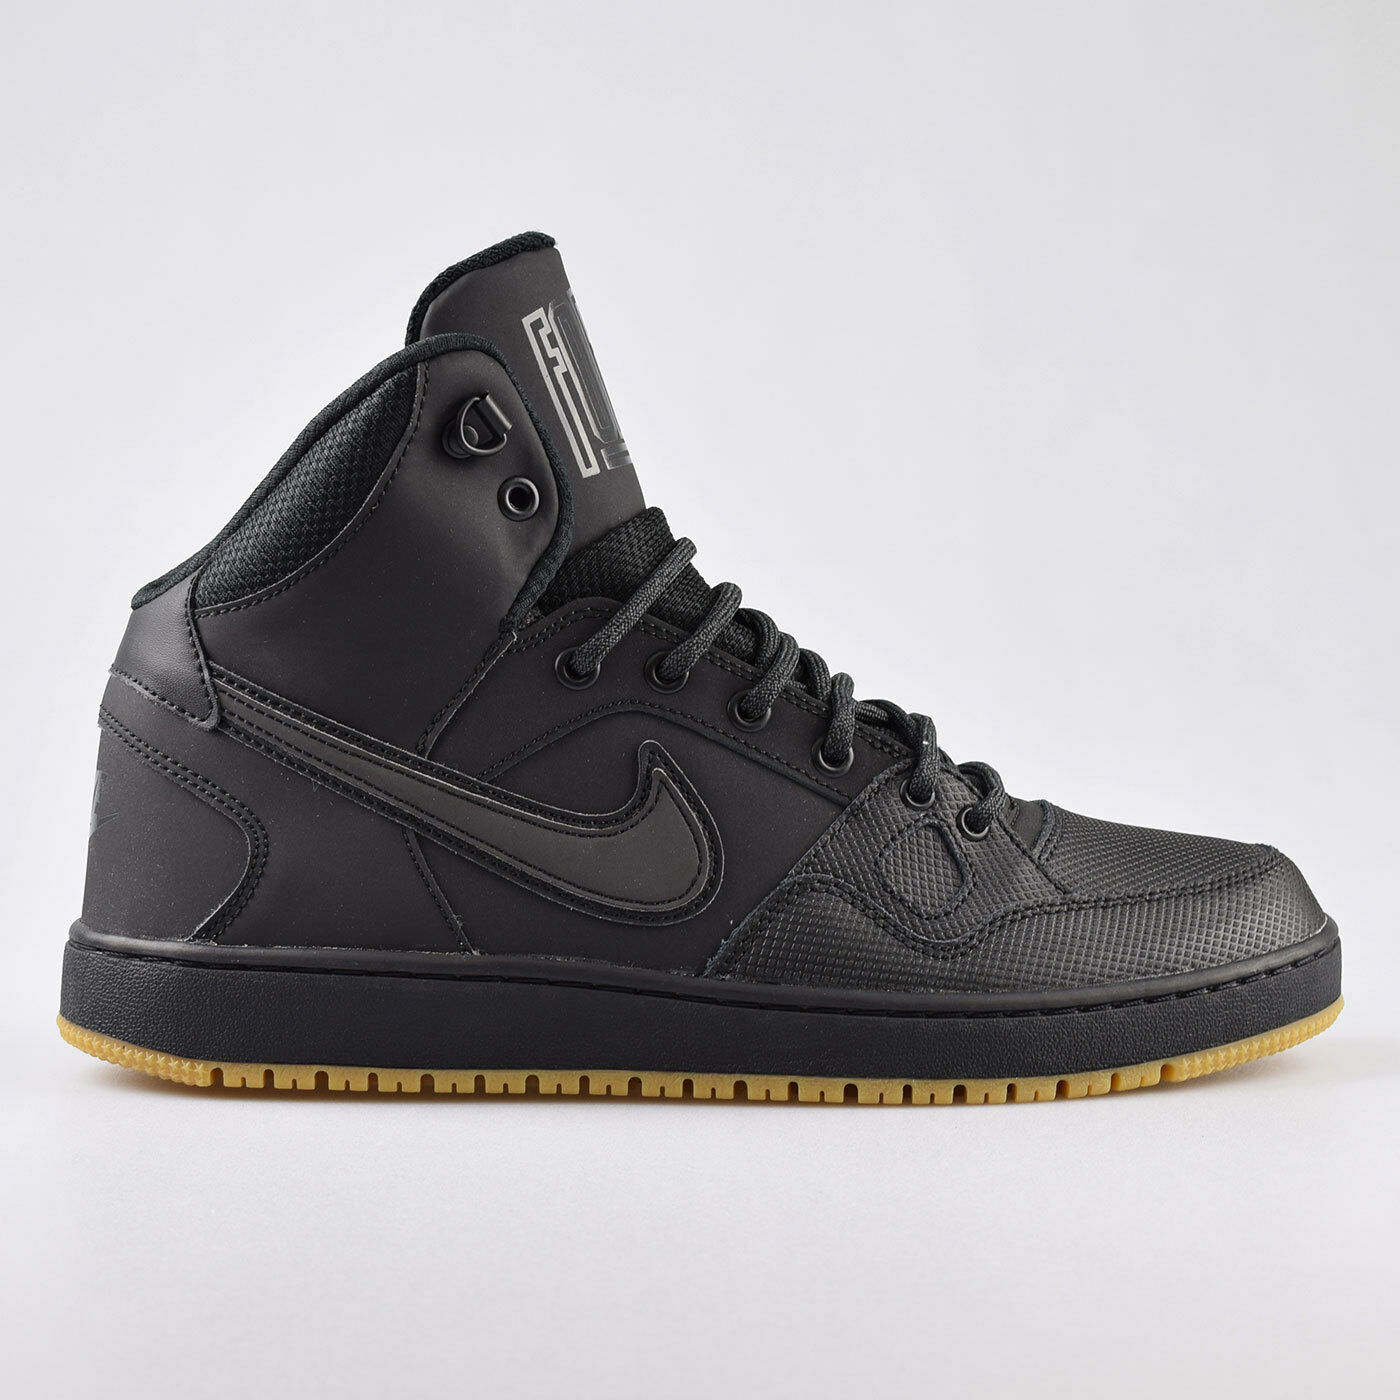 Nike Son Of Force Mid Winter Black Grey Men's Trainers shoes Boots 7_8_8.5_10_12